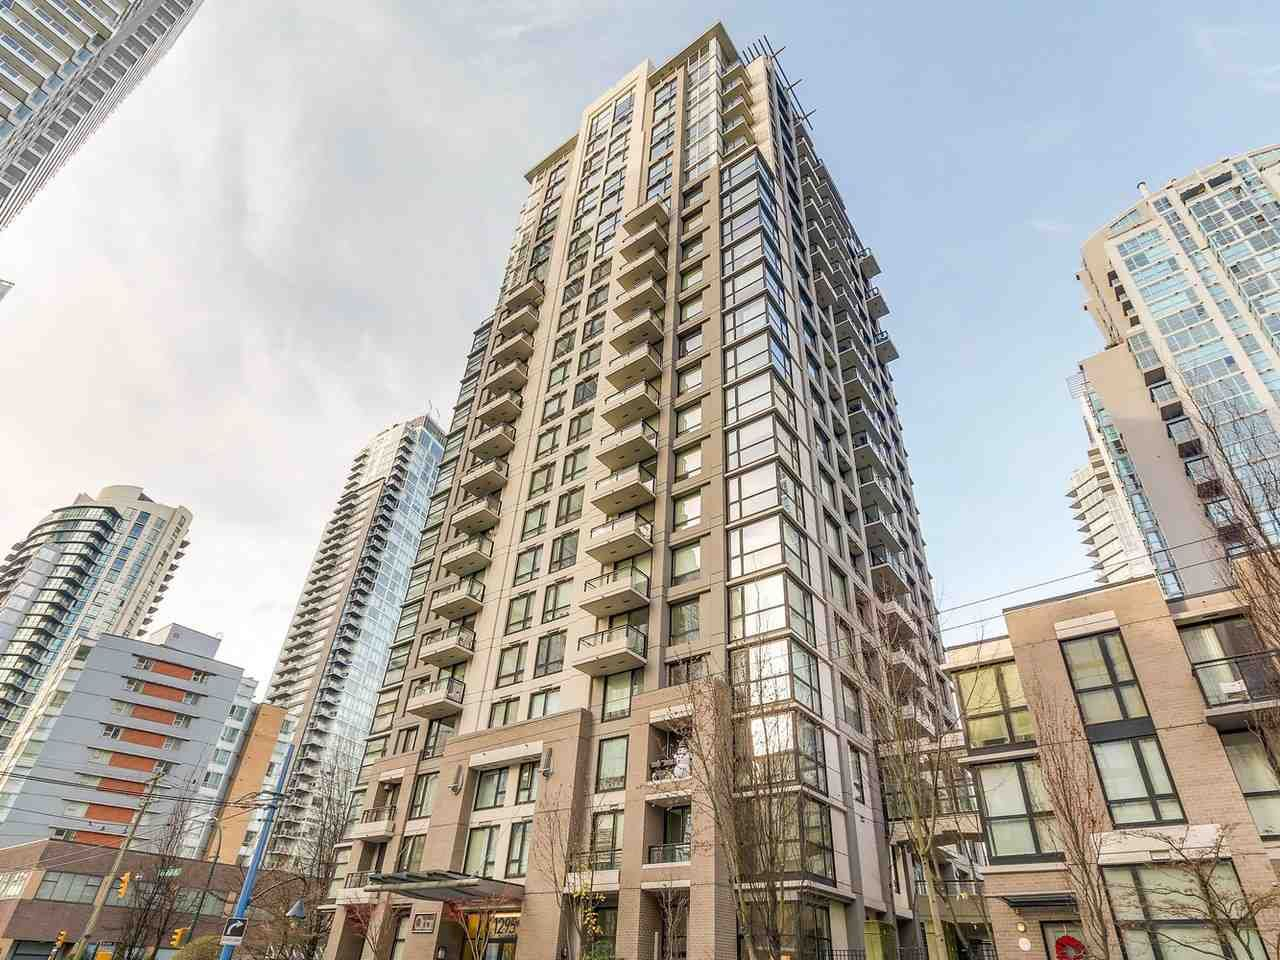 """Main Photo: 1507 1295 RICHARDS Street in Vancouver: Downtown VW Condo for sale in """"The Oscar"""" (Vancouver West)  : MLS®# R2228775"""